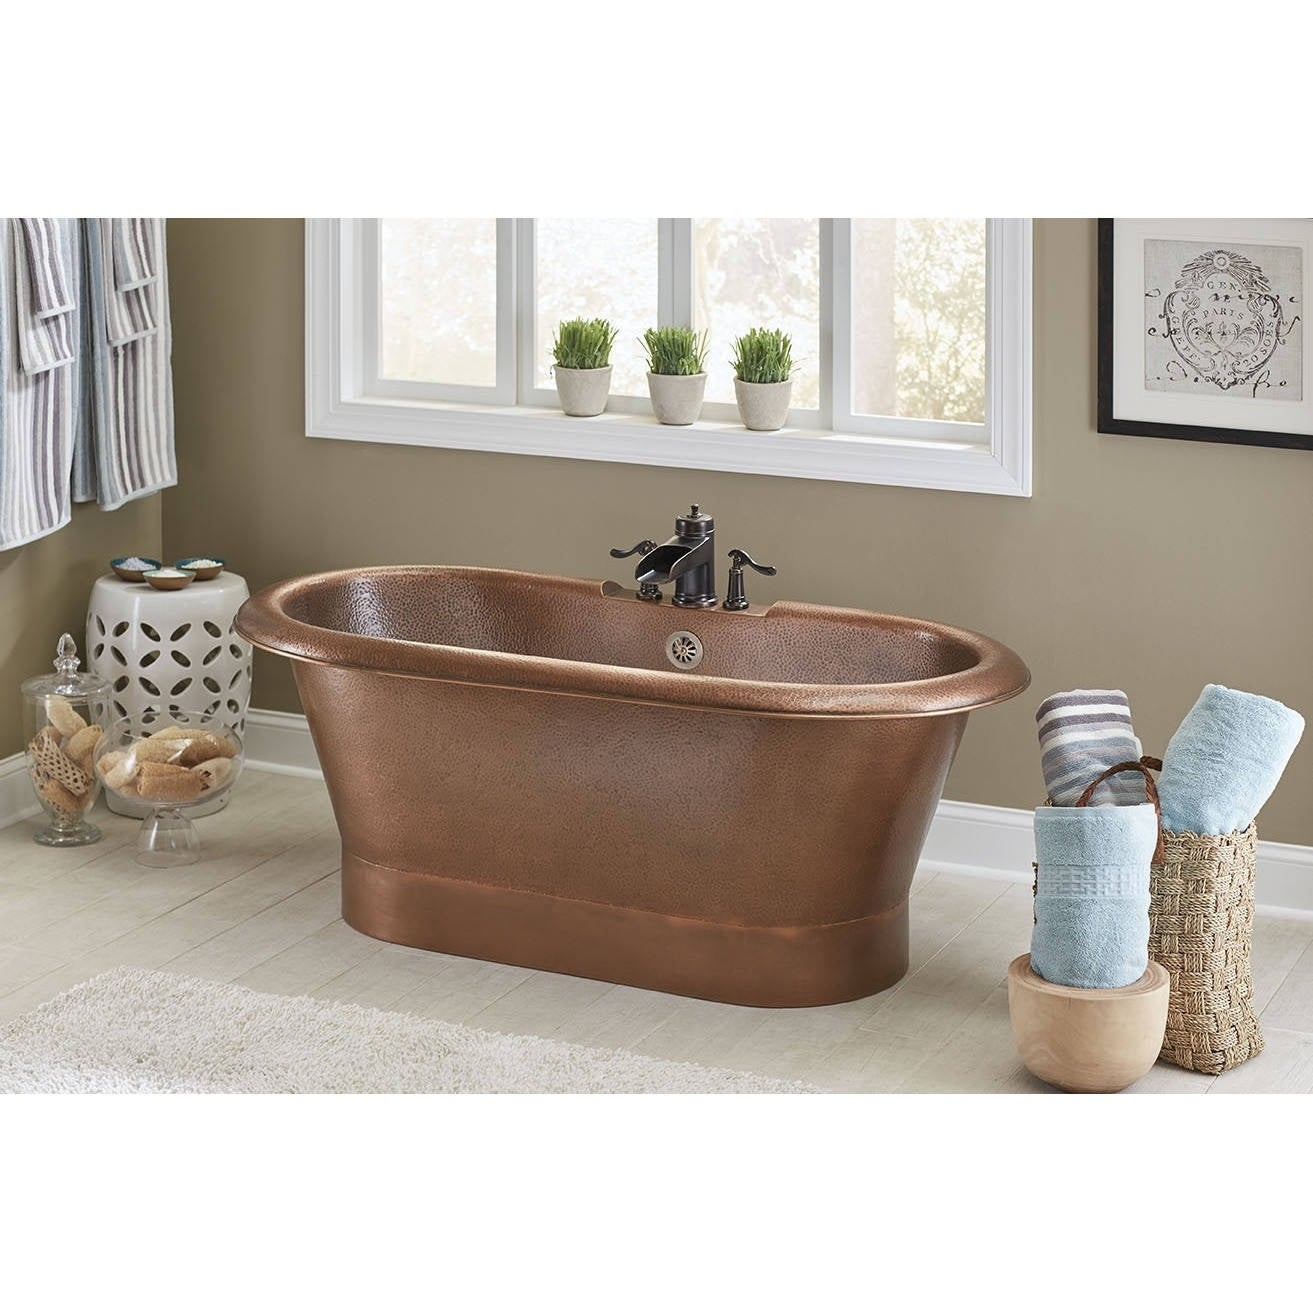 Picture of: Shop Sinkology Thales Copper Freestanding Bathtub With Overflow 3 Hole Faucet Deck In Antique Copper Brown Overstock 14506705